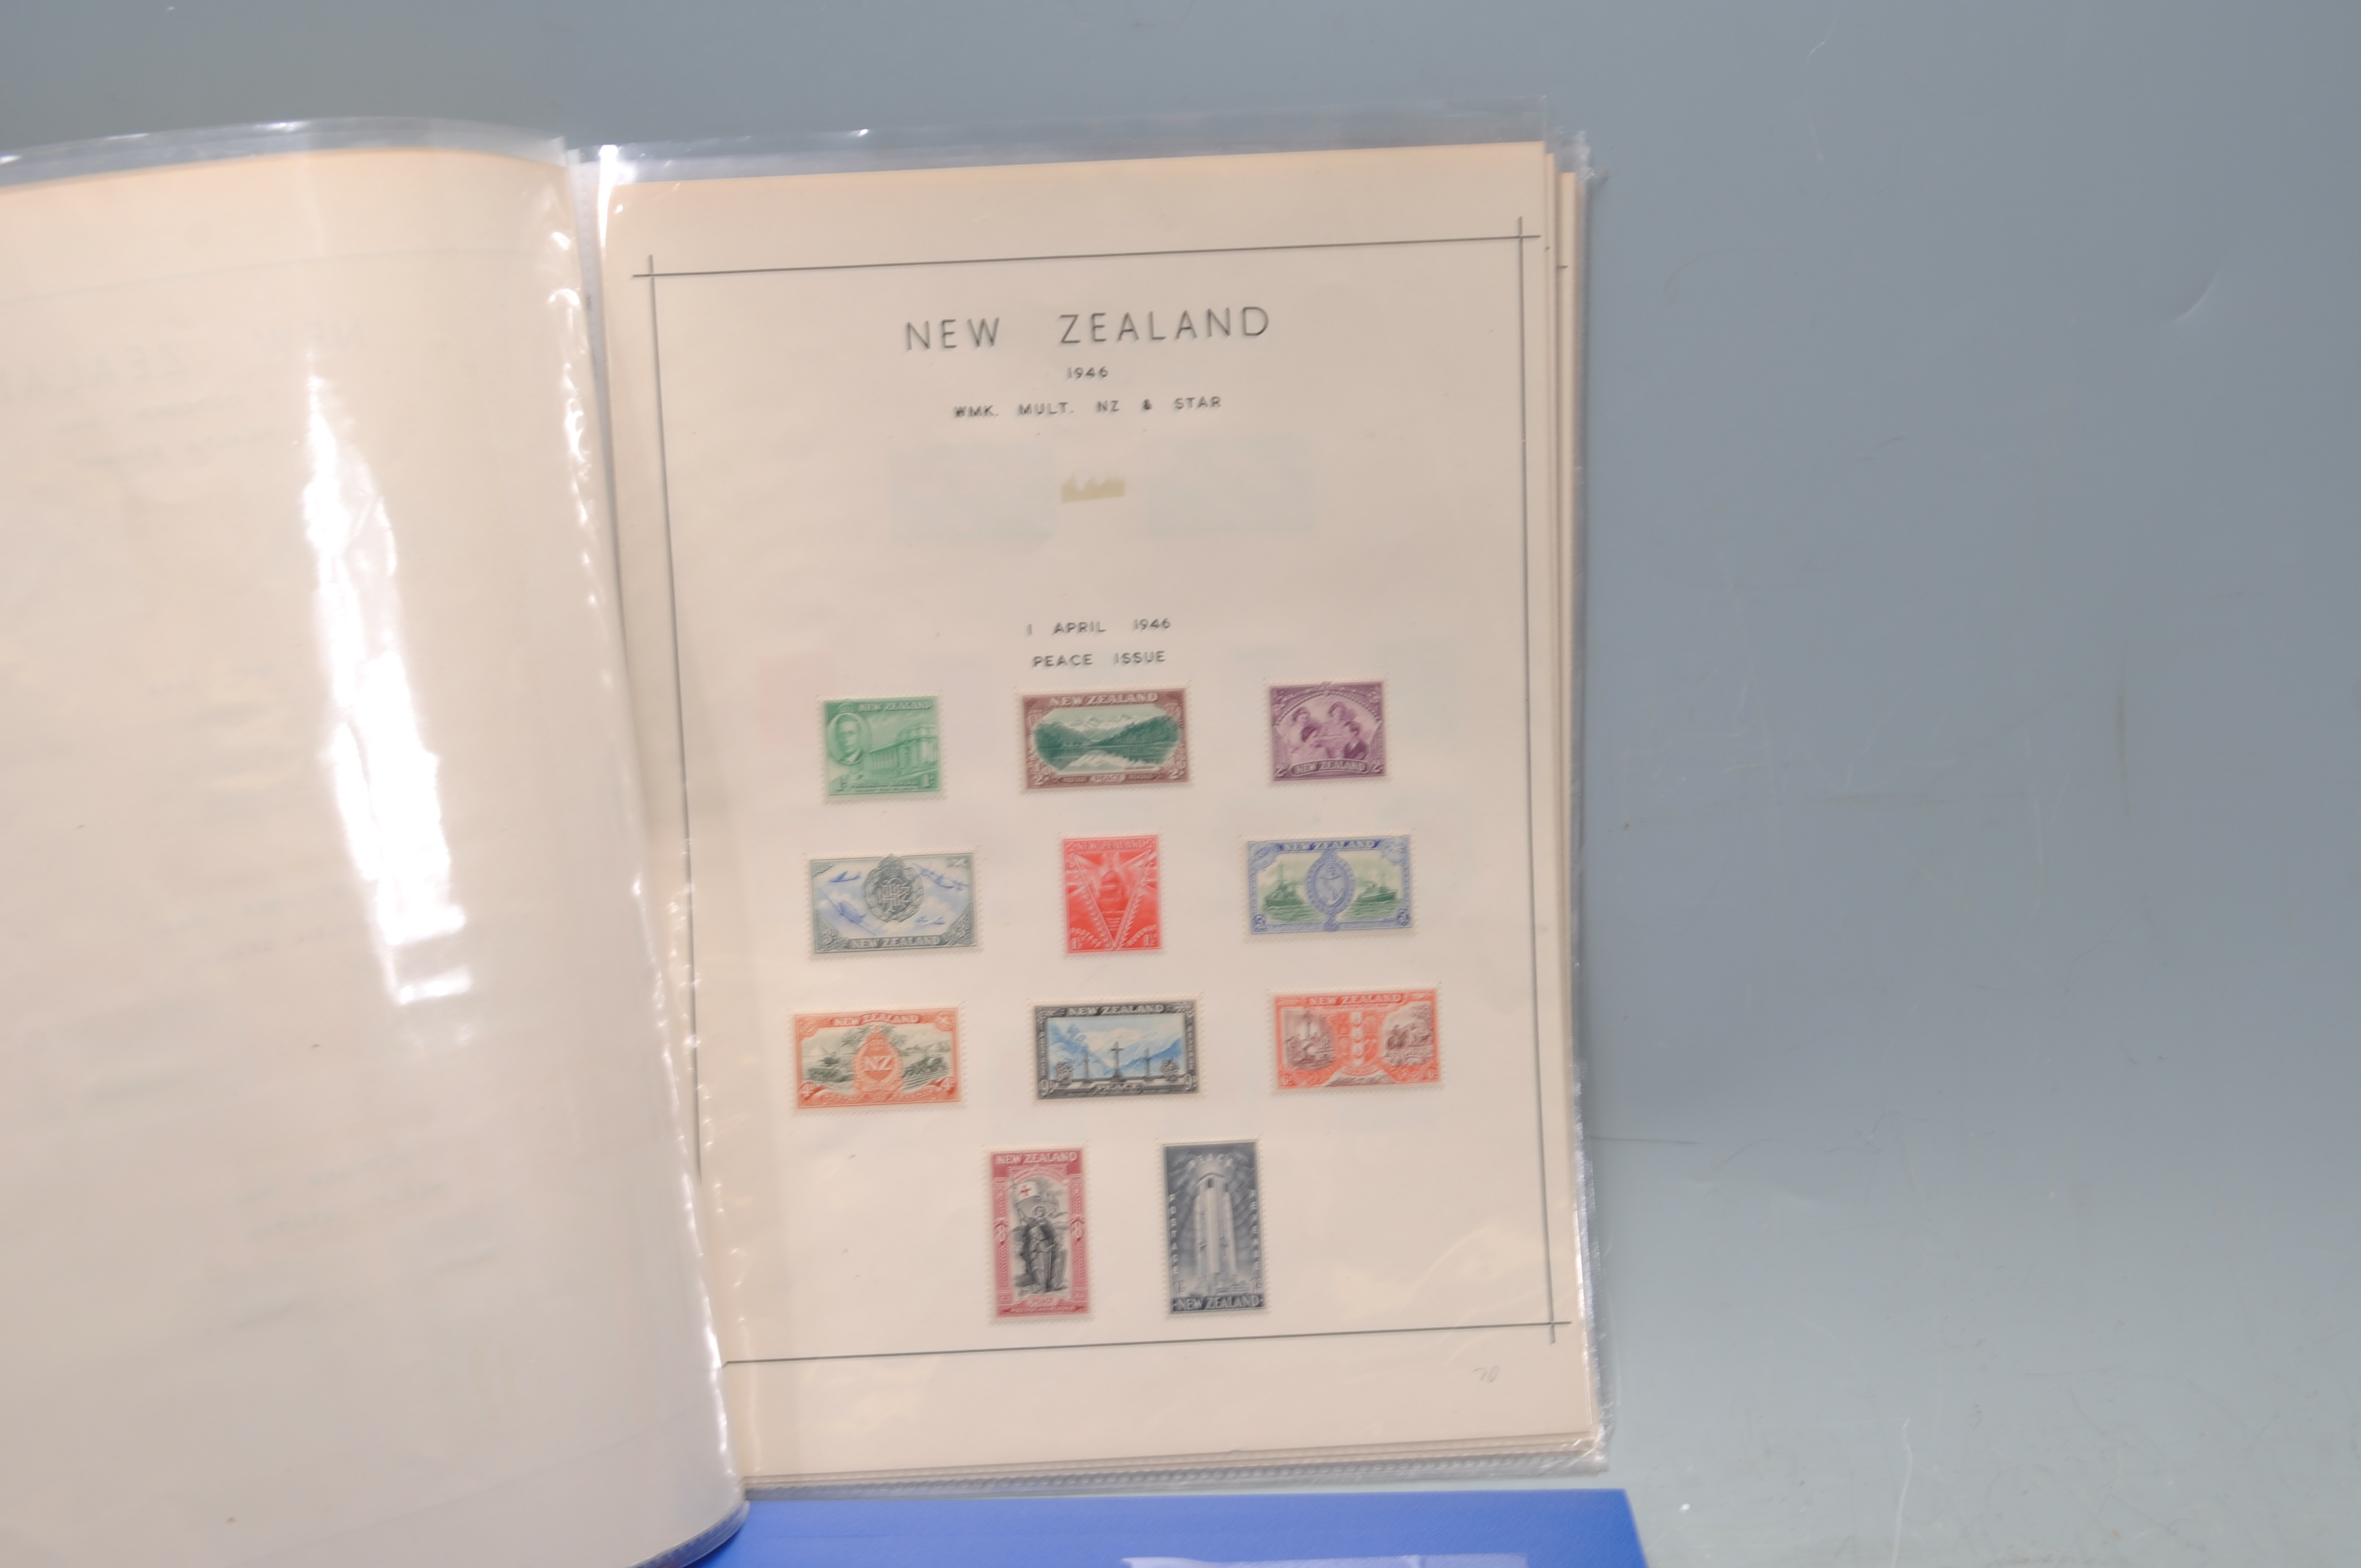 NEW ZEALAND MINT COLLECTION OF POSTAGE STAMPS - Image 4 of 8